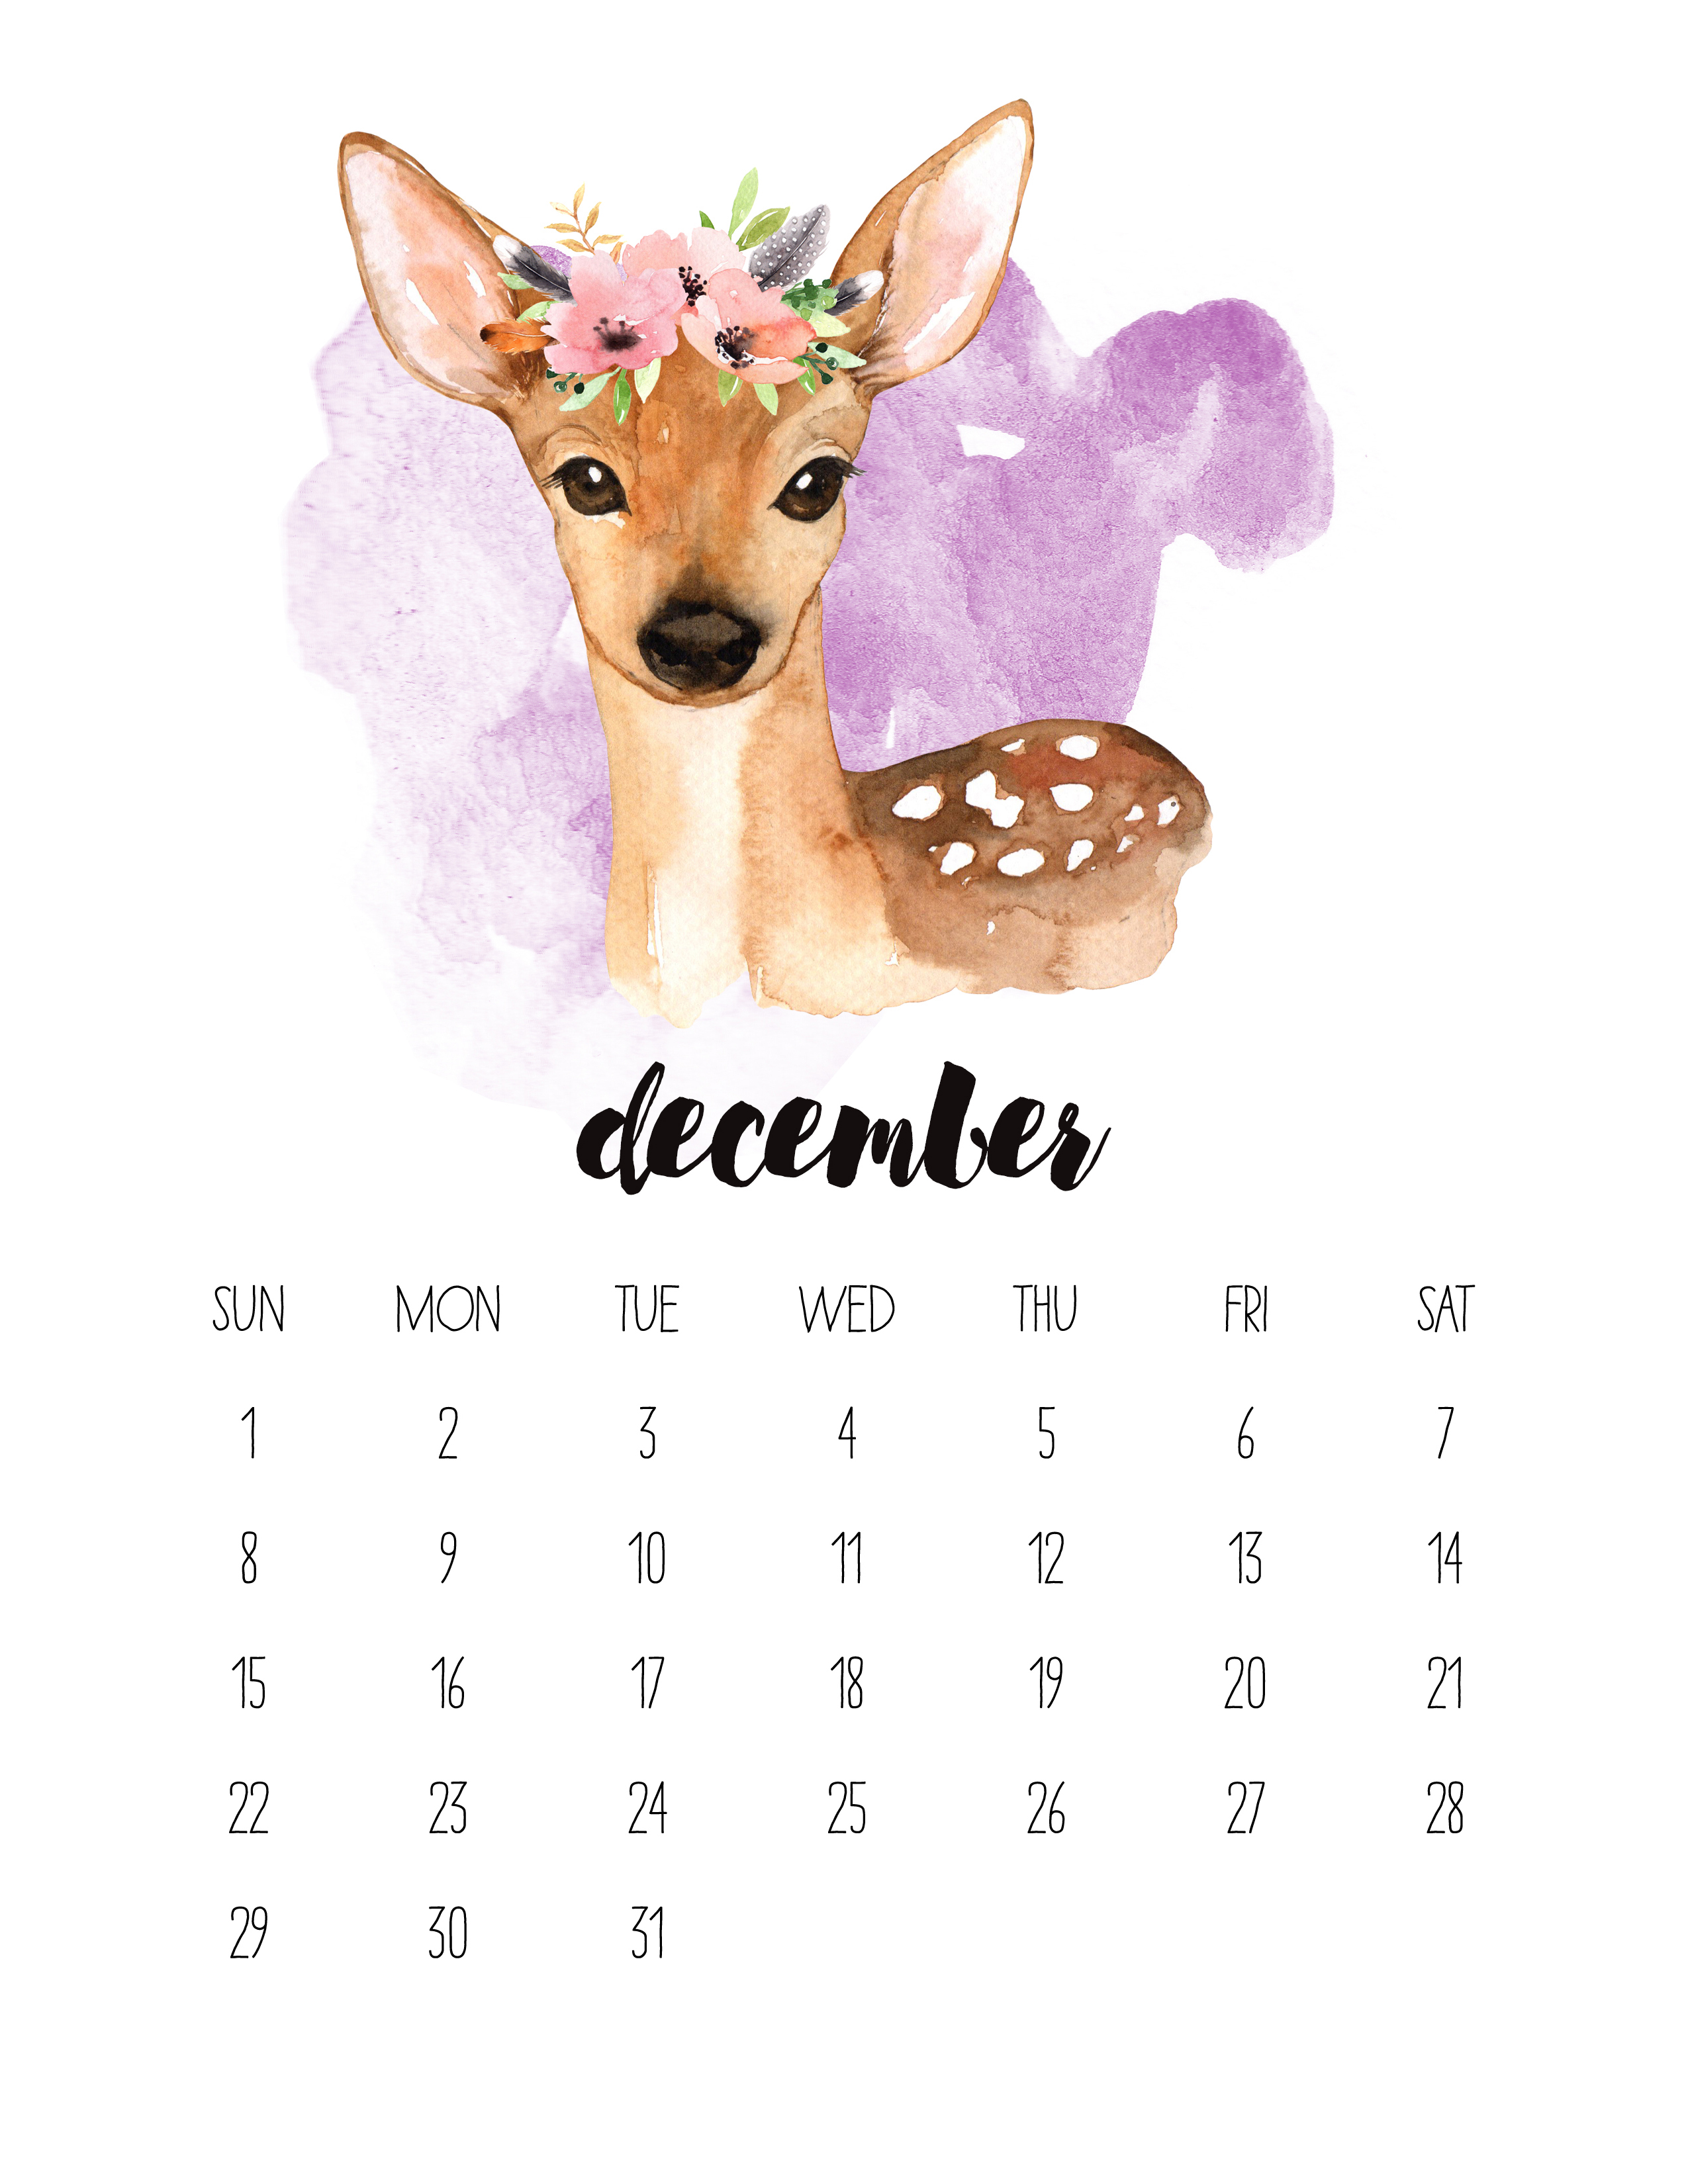 December 2019 Calendar Animals Free Printable 2019 Watercolor Animal Calendar   The Cottage Market